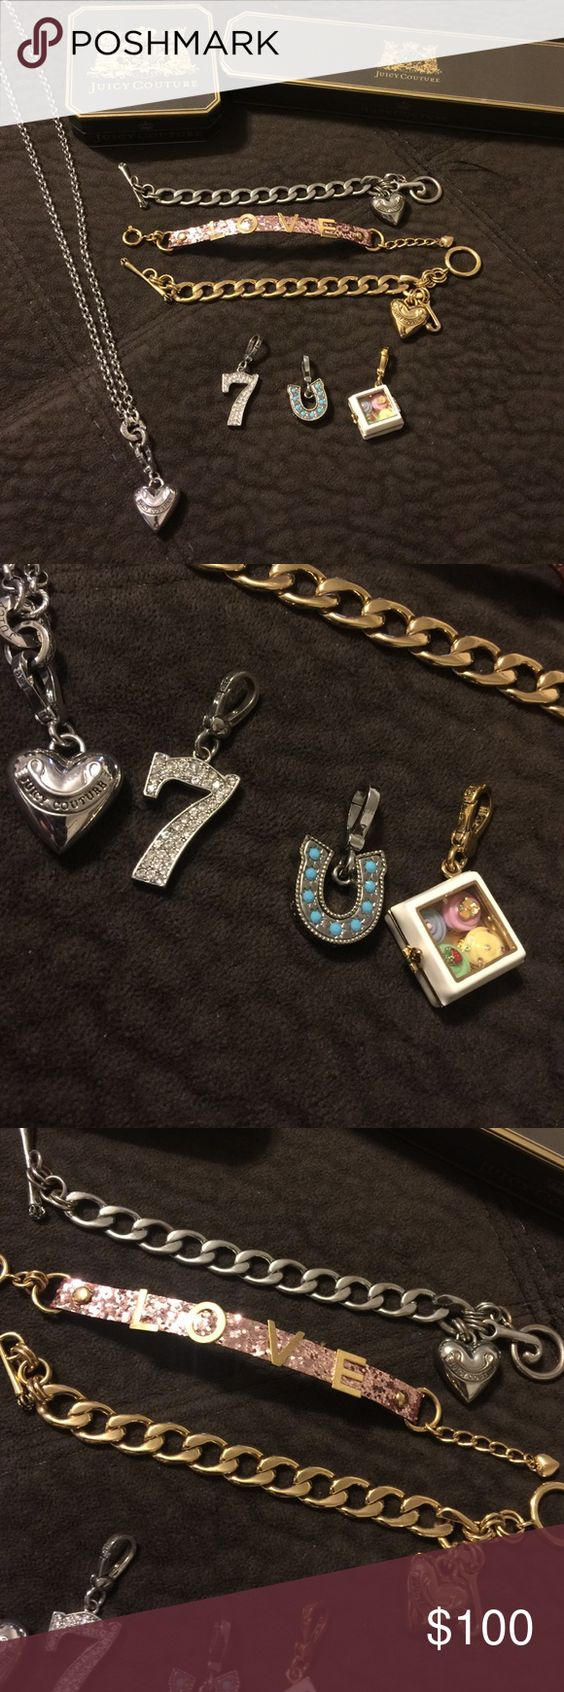 Juicy Couture Jewelry Lot Bracelets Charm Necklace All Excellent Used  Condition Silver Charm Bracelet Just